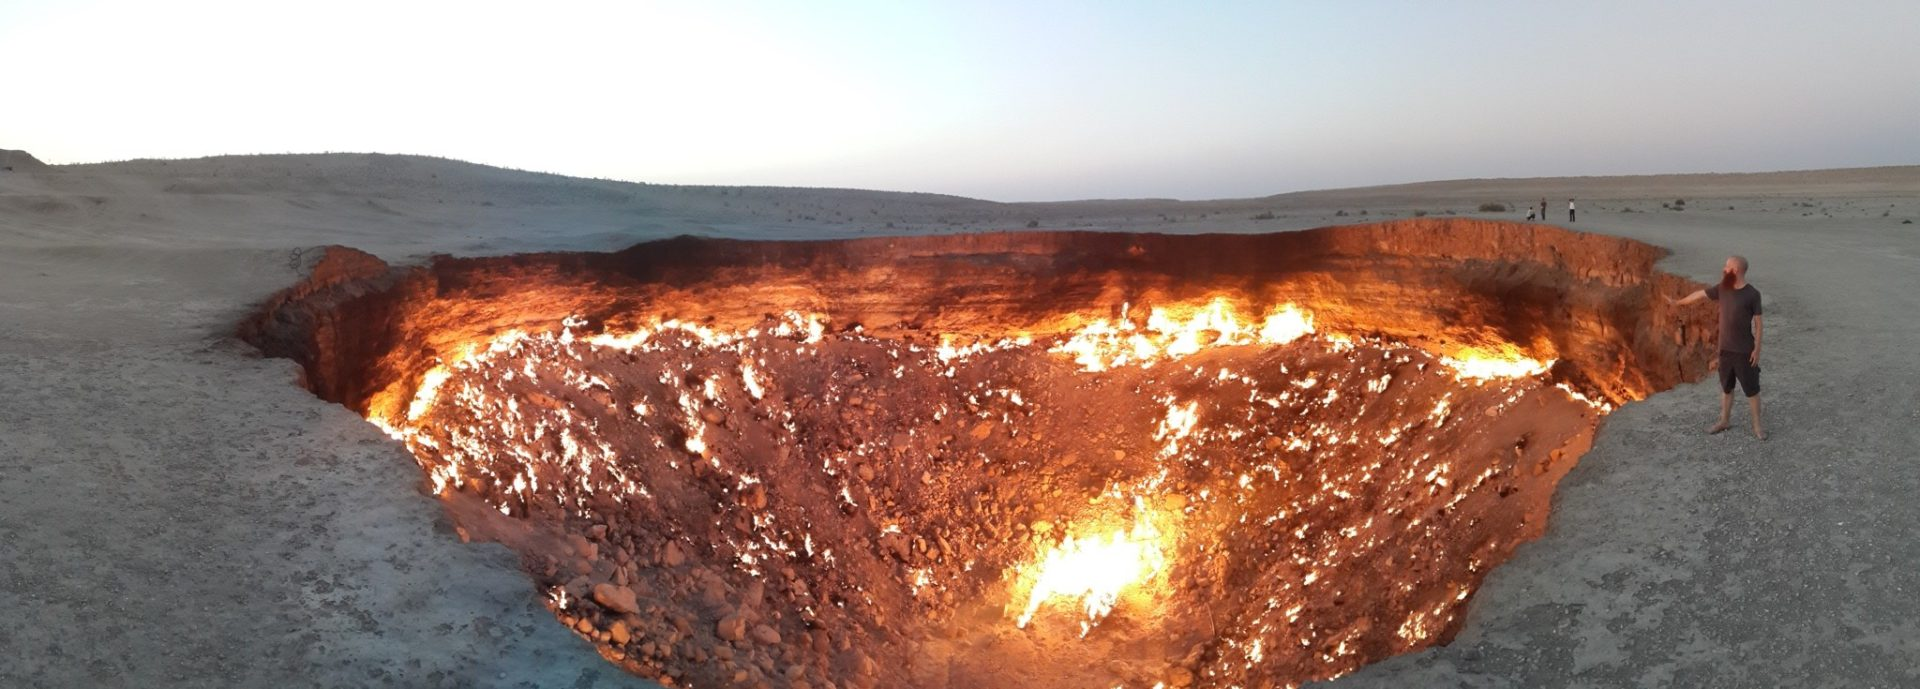 A railing-free, burning gas crater pictured next to a non-Russian-speaking vegetarian in flip-flops in the Karakum desert, Turkmenistan.